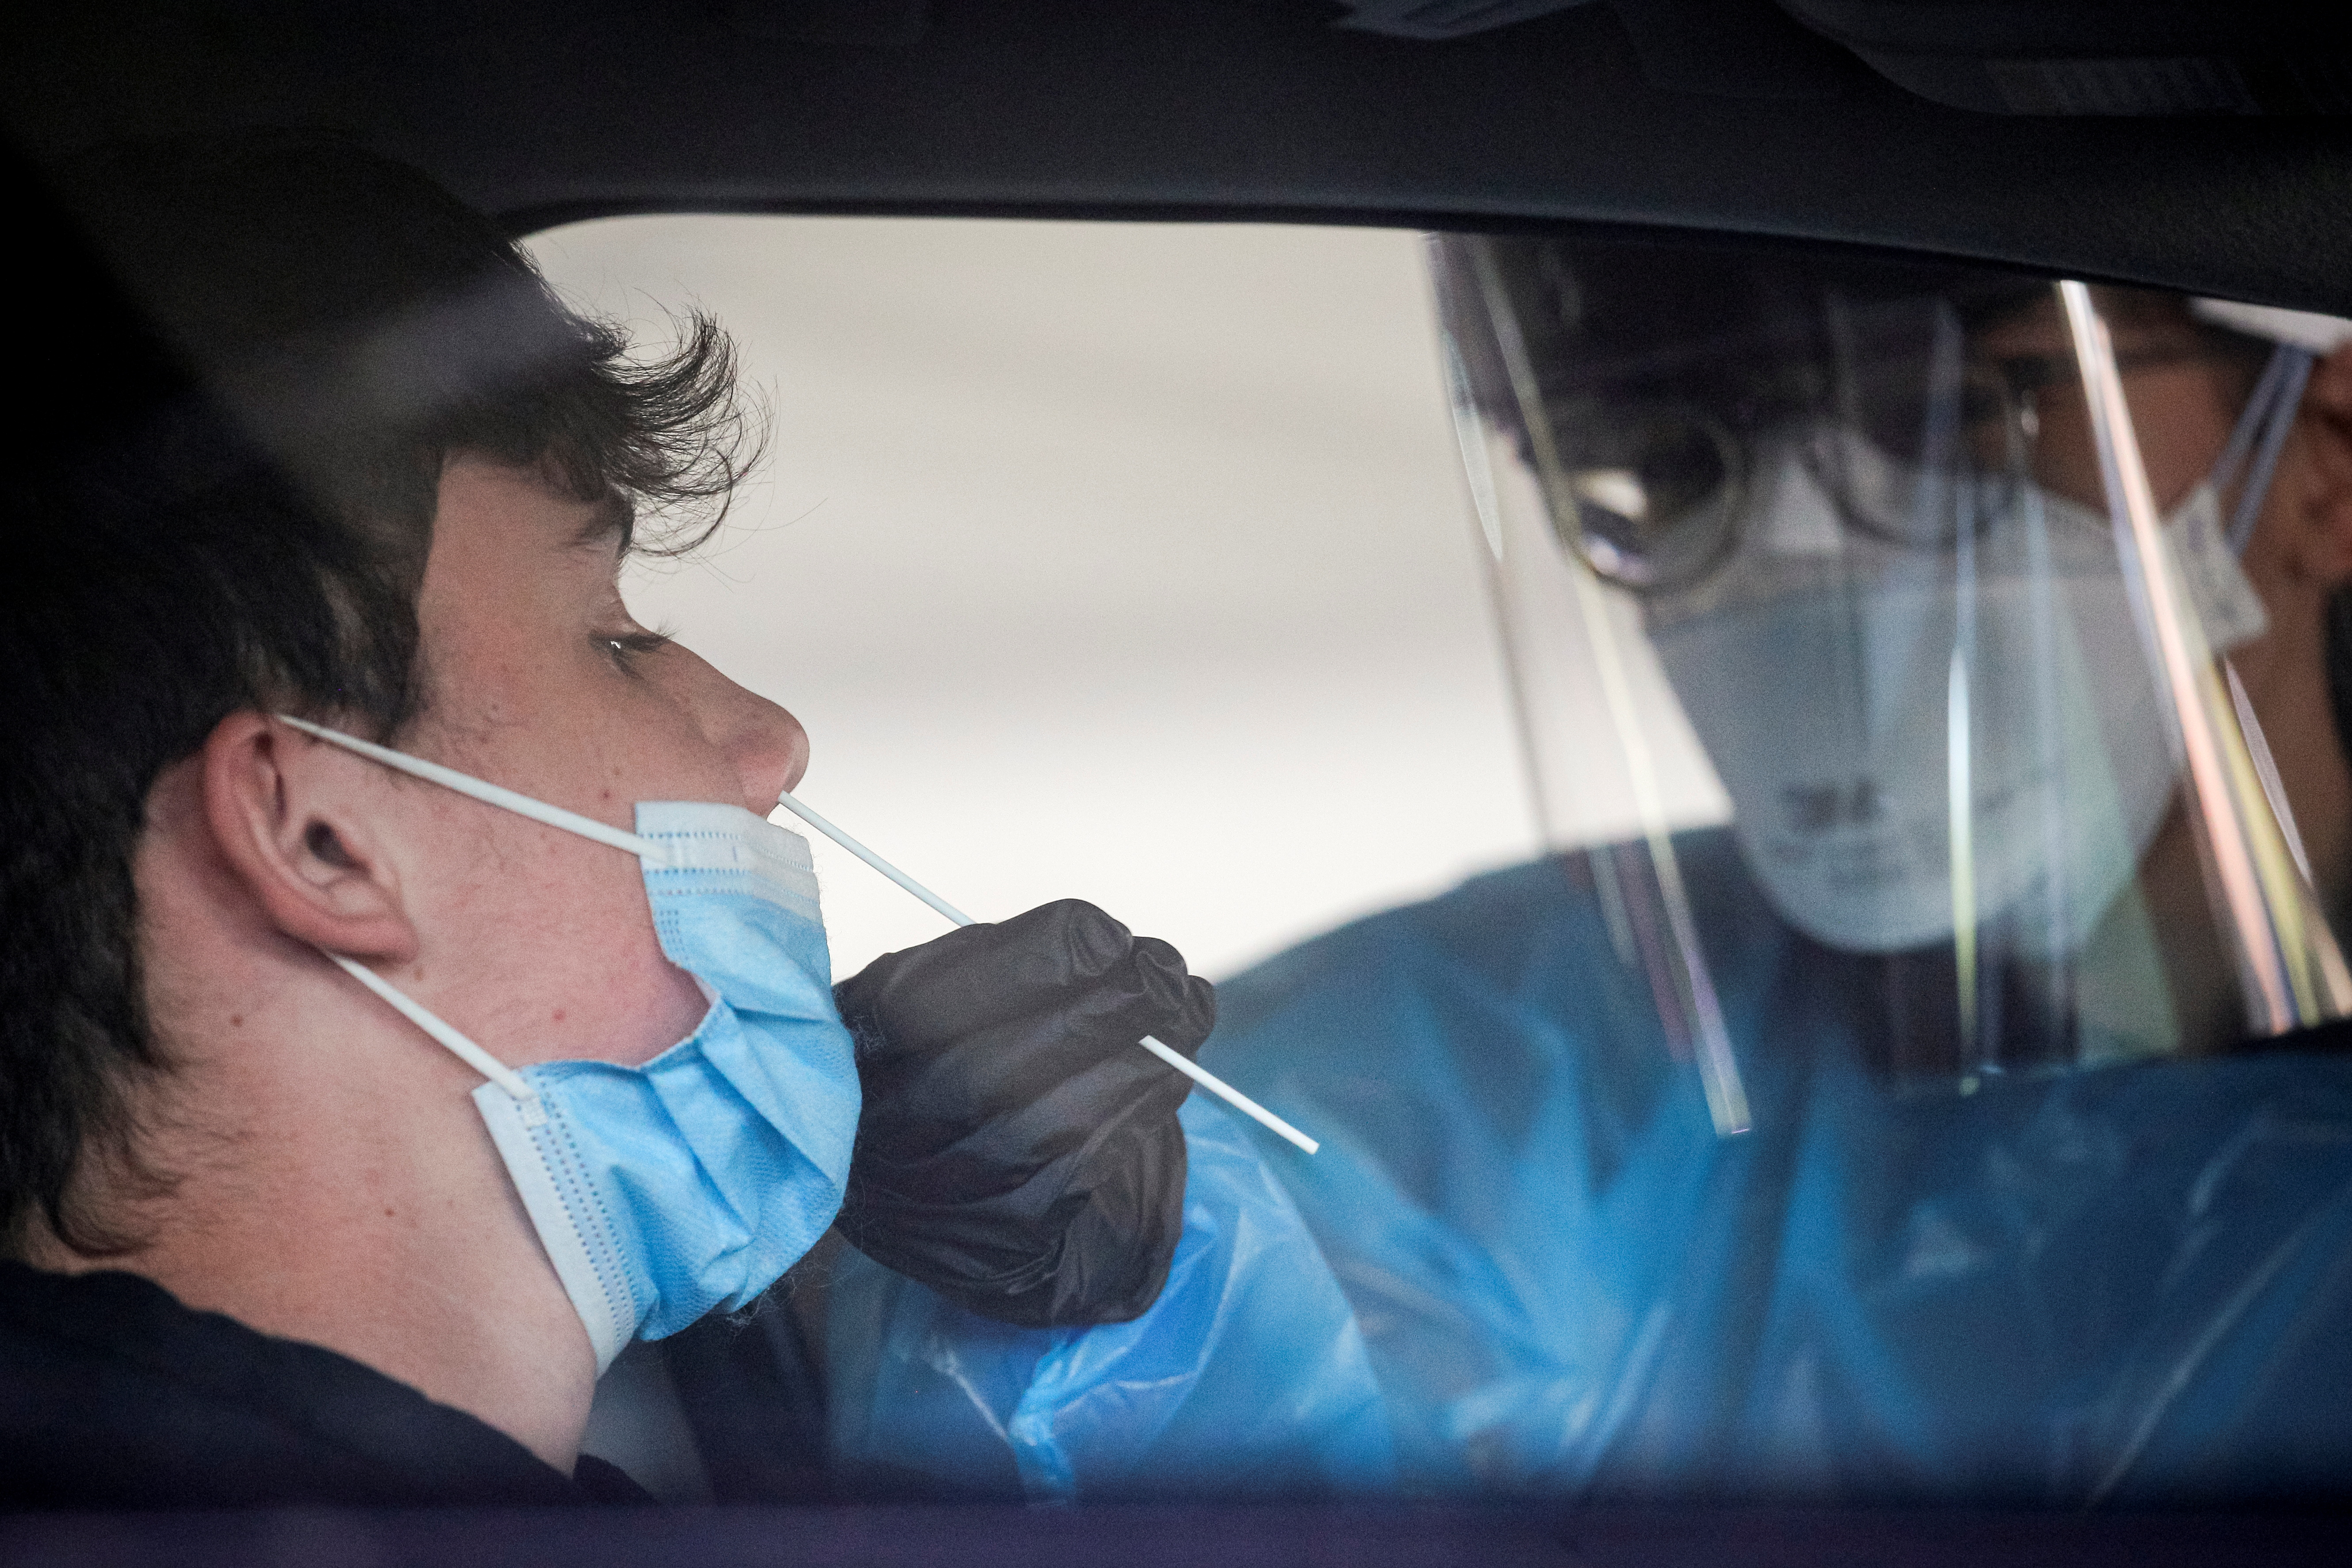 A health care worker gives a coronavirus test at a COVID drive-thru testing center at Bergen Community College, as the global outbreak of the coronavirus disease (COVID-19) continues, in Paramus, New Jersey, U.S., December 3, 2020.  REUTERS/Brendan McDermid